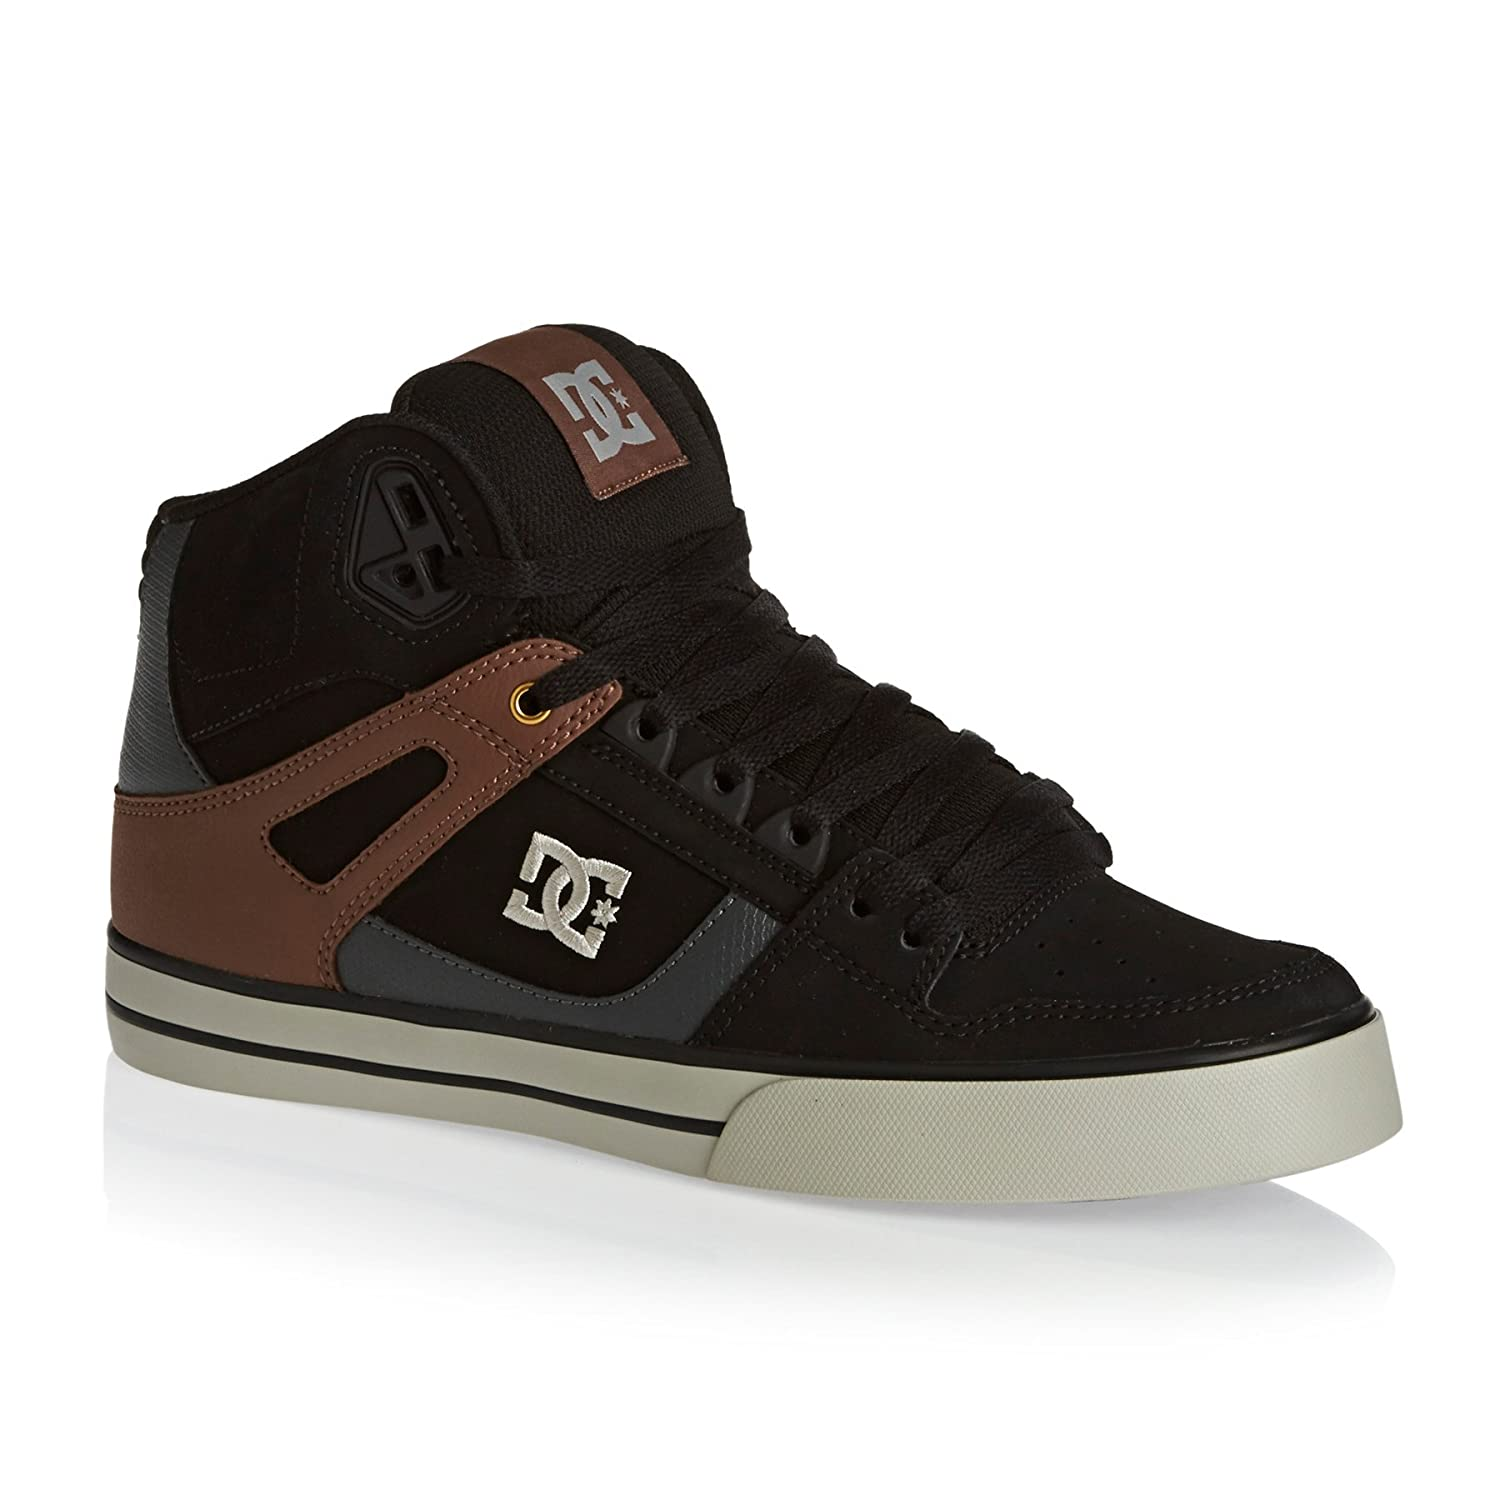 DC SPARTAN HIGH WC Unisex-Erwachsene Hohe Sneakers  10.5|Black/Tan